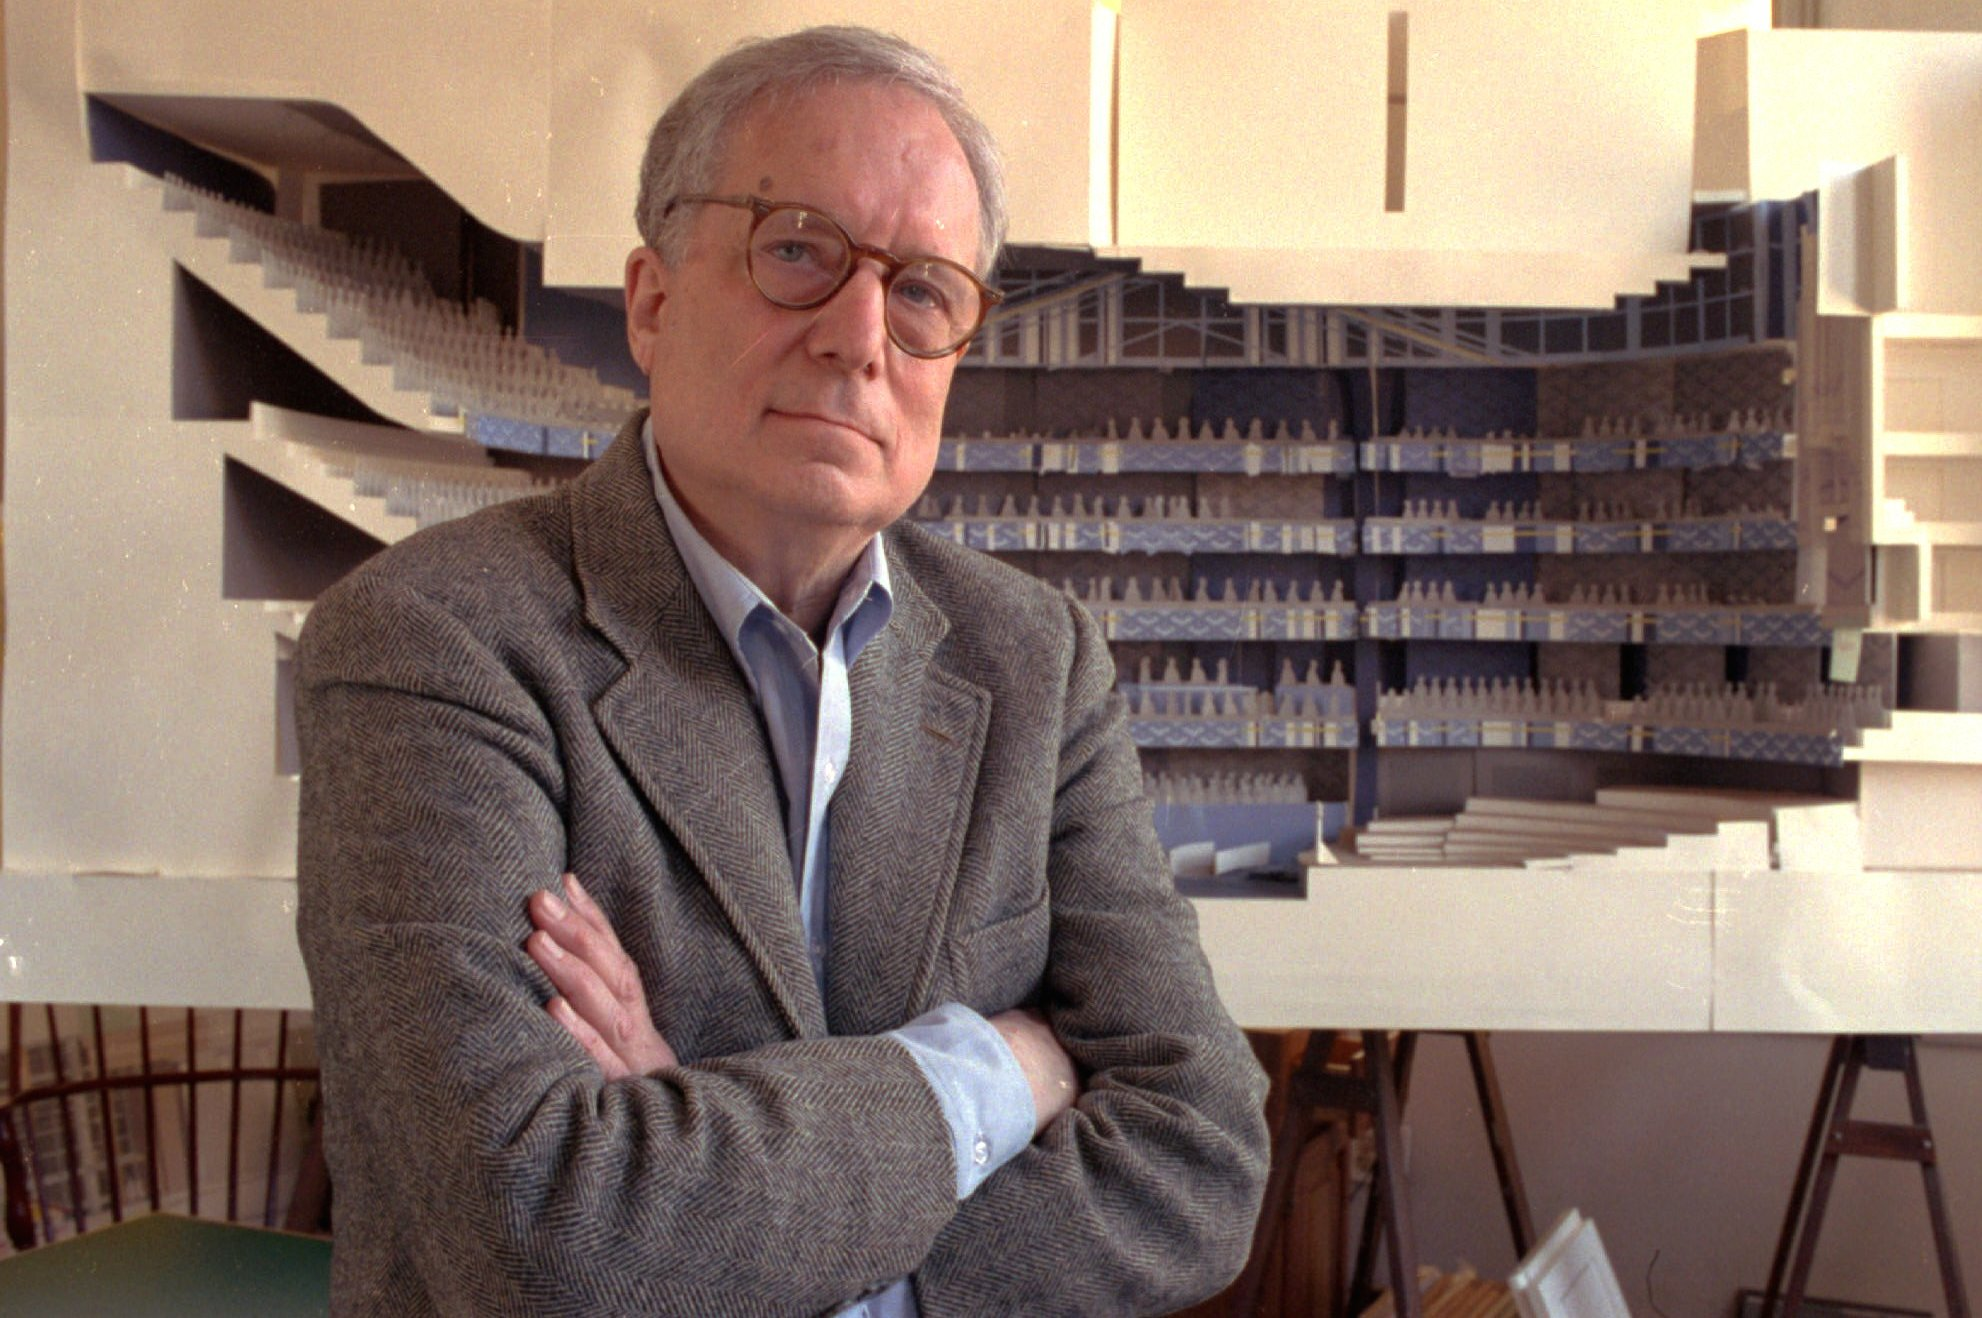 Architect Robert Venturi poses in his office in the Manayunk section of Philadelphia, with a model of a new hall for the Philadelphia Orchestra in background, in April of 1991.